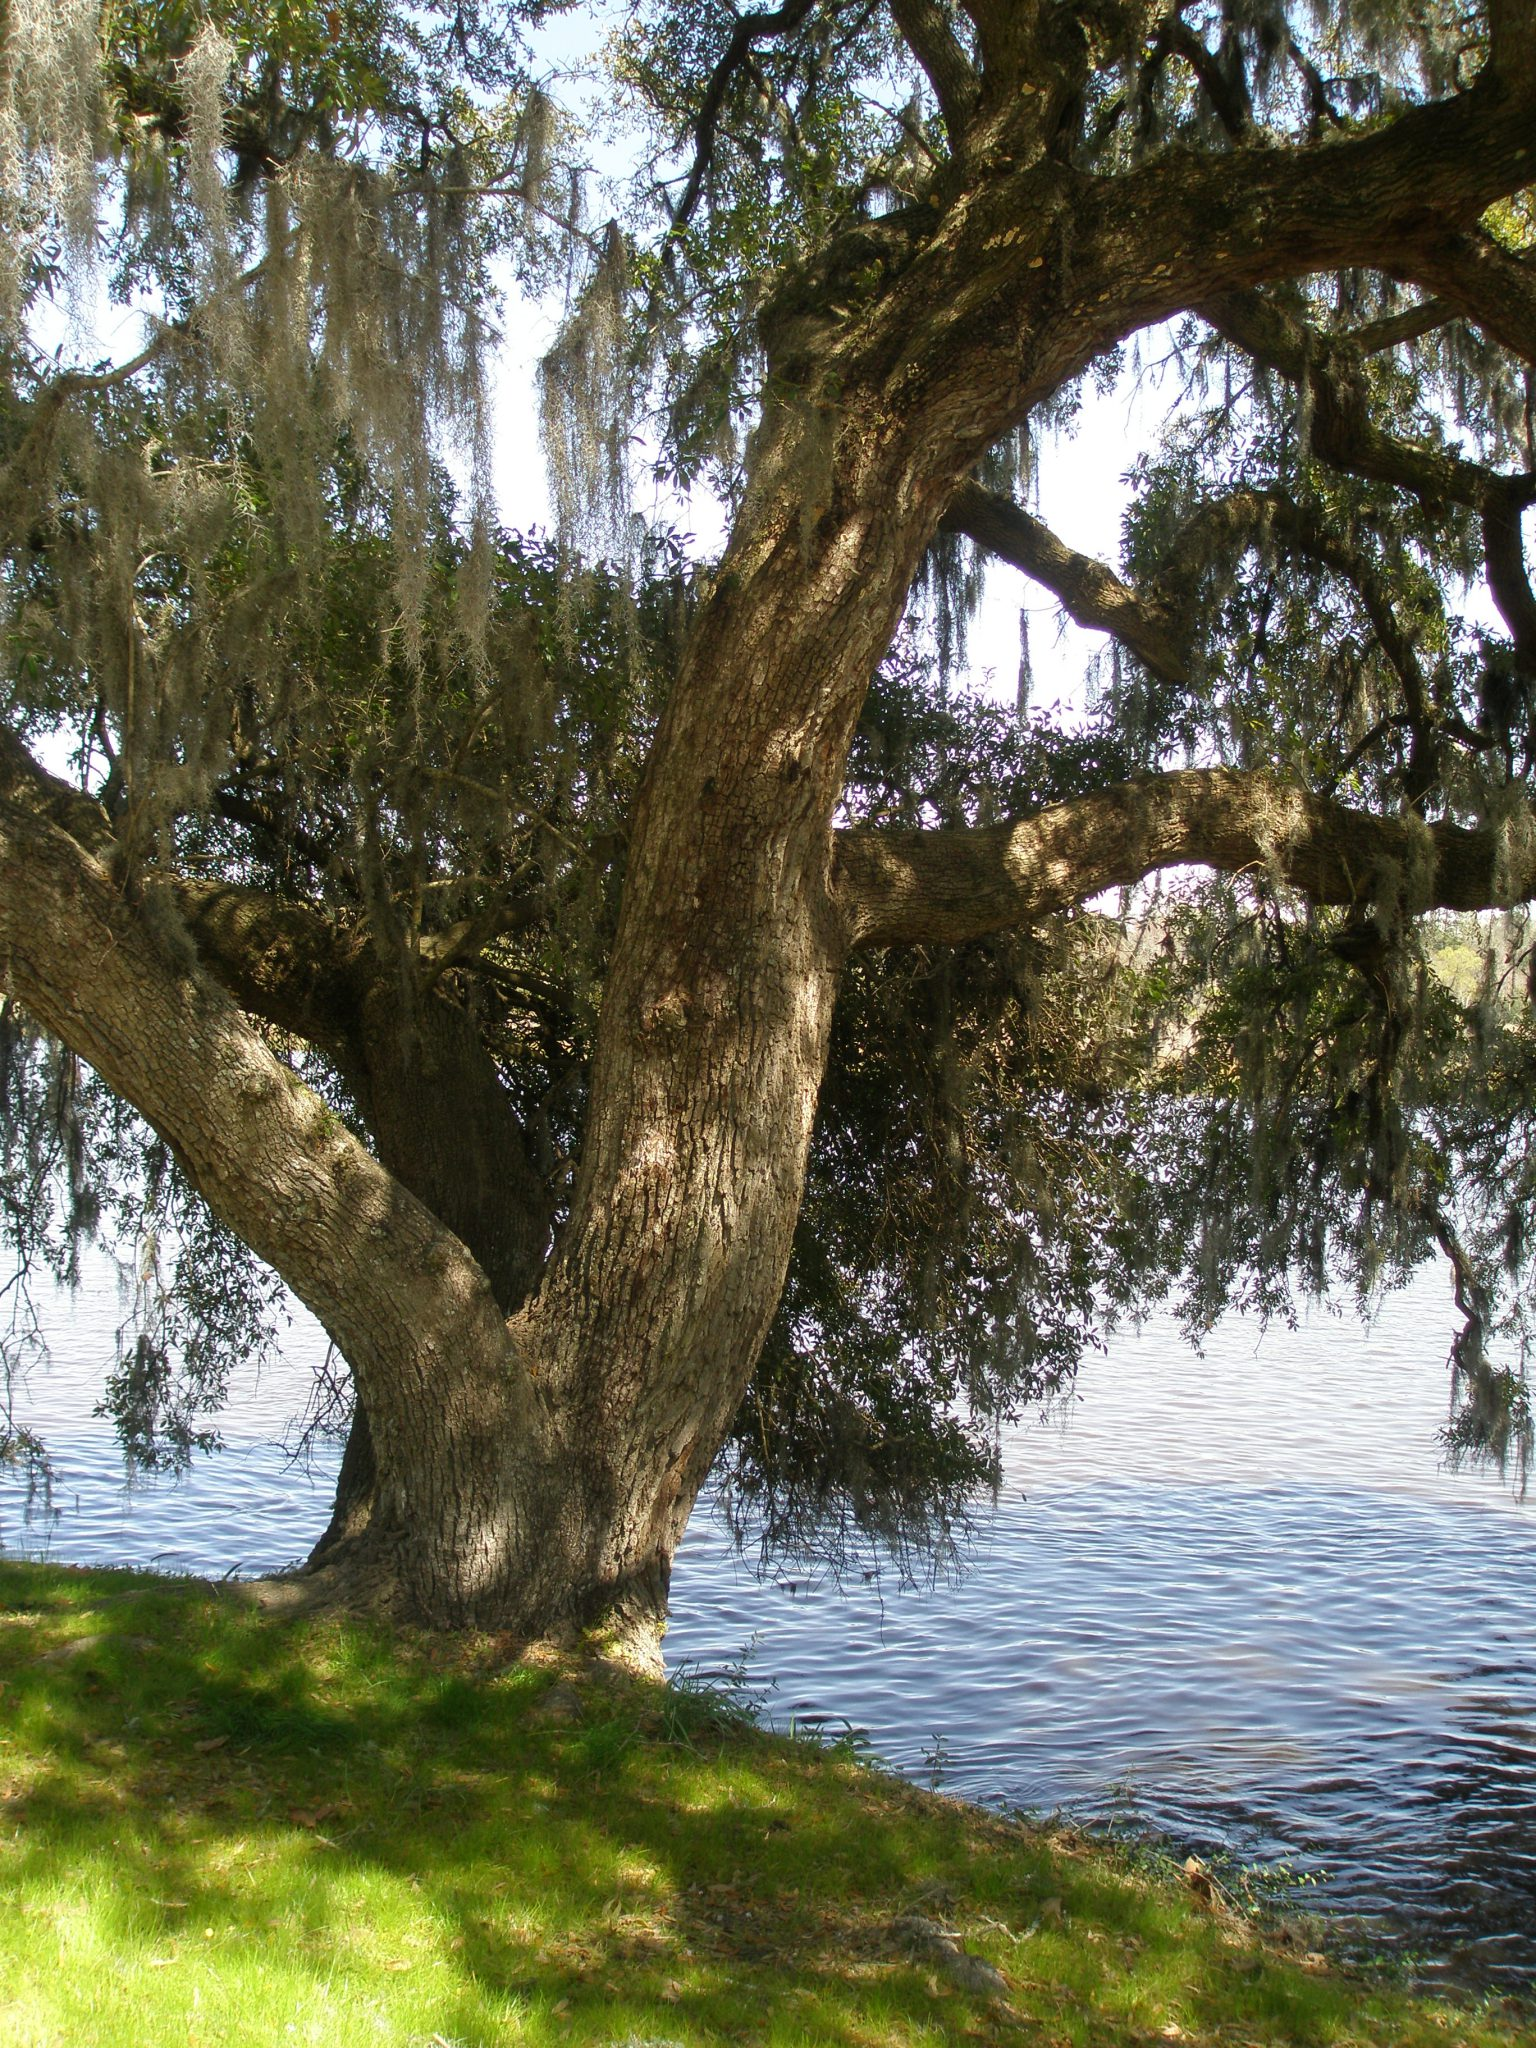 An ancient tree anchors the river bank